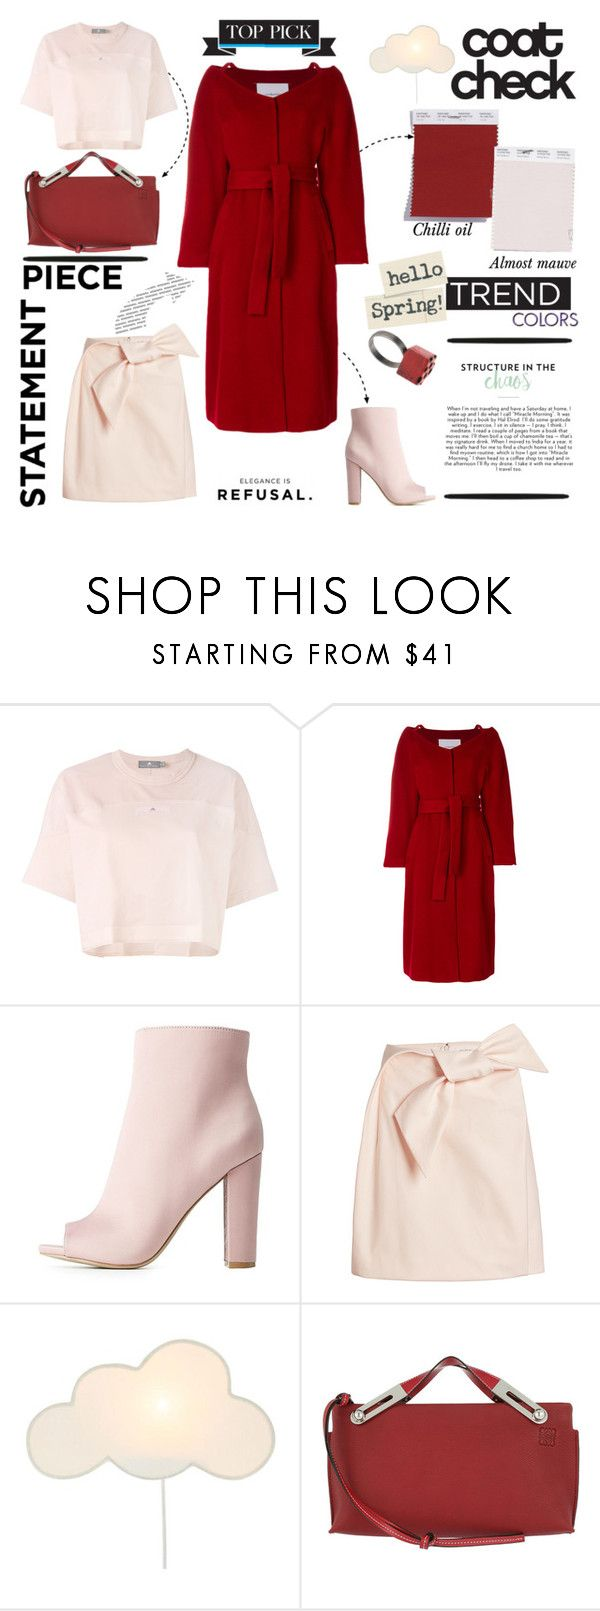 """""""Coat in 2018 Trend Color - Chilli Oil"""" by taci42 ❤ liked on Polyvore featuring adidas, pushBUTTON, Wild Diva, Delpozo, Loewe and Chanel"""